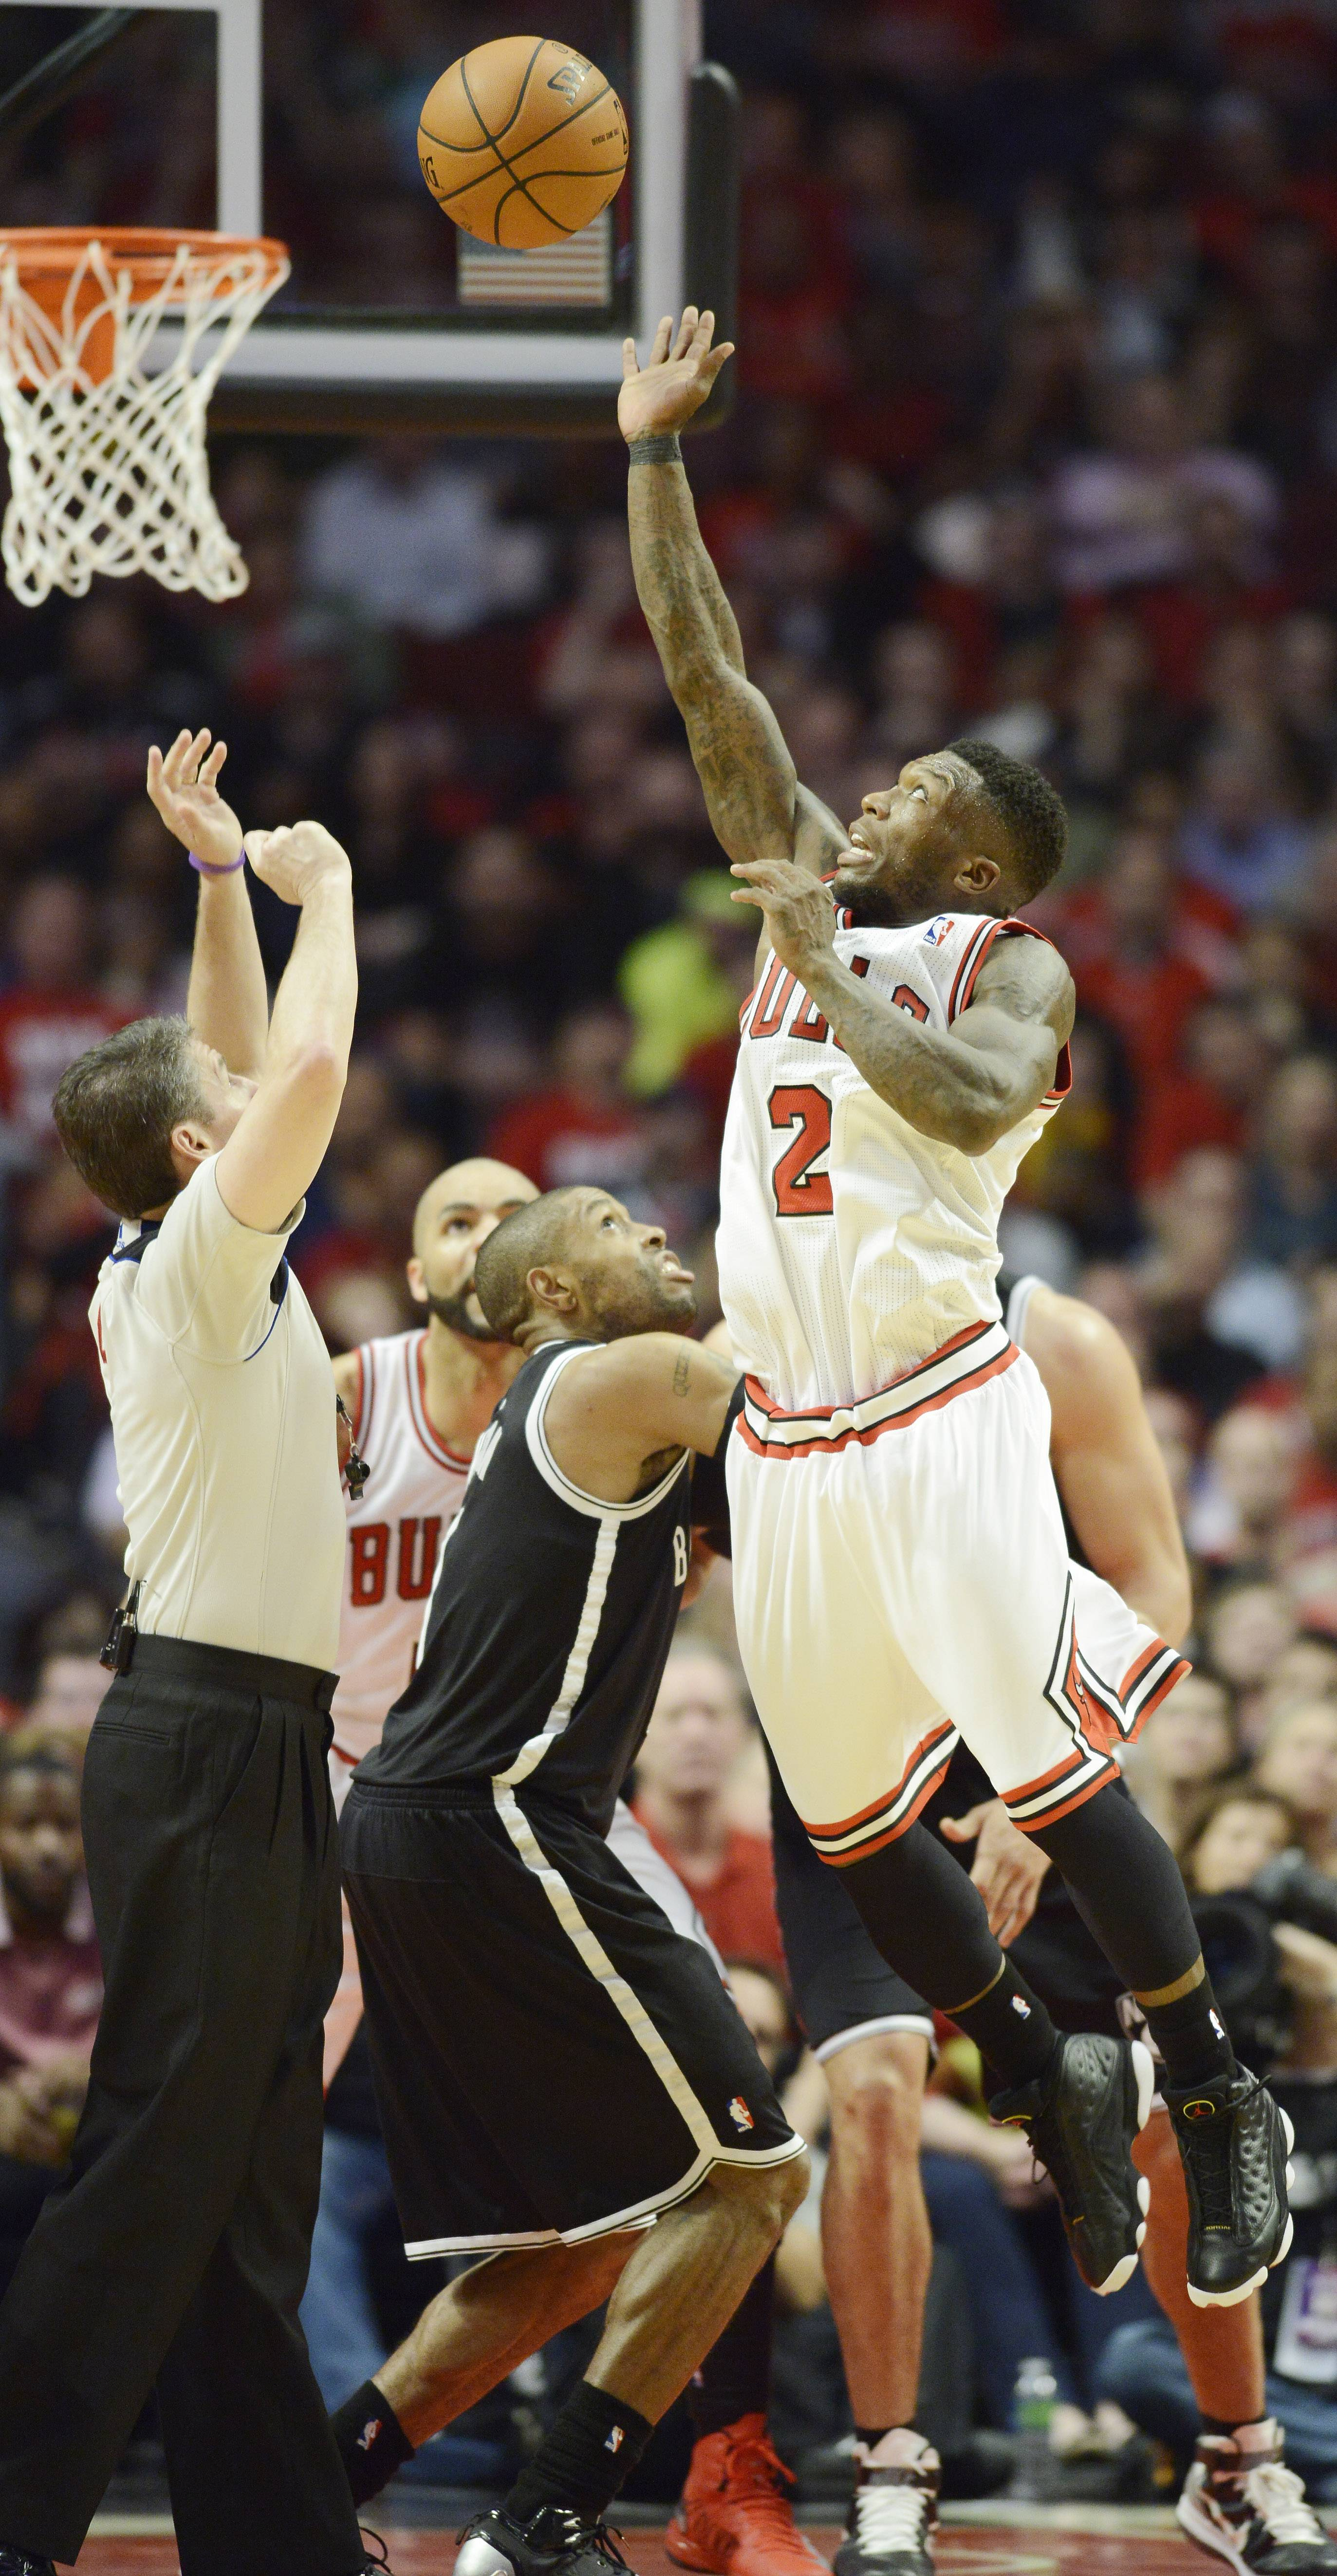 Nate Robinson of the Chicago Bulls leaps high on a second effort for a jump ball  in Game 6 of the first round playoff game at the United Center in Chicago, Thursday, May 2, 2013.